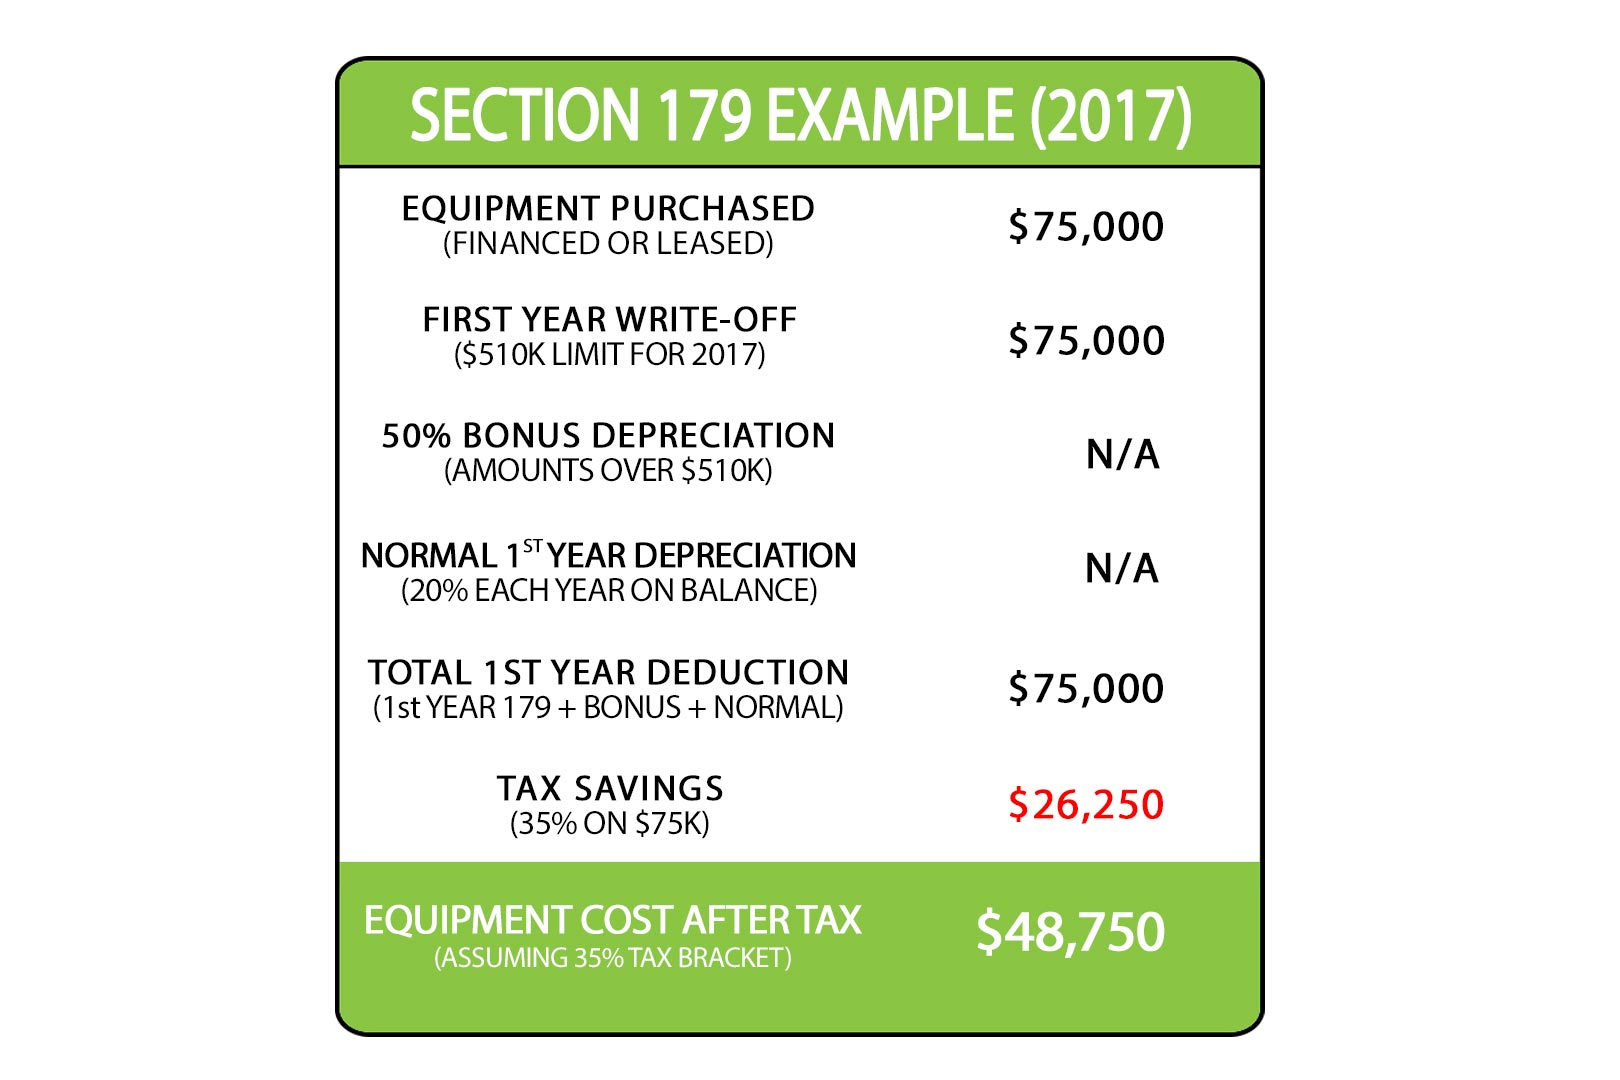 IRS Section 179 Deduction Limits for 2017